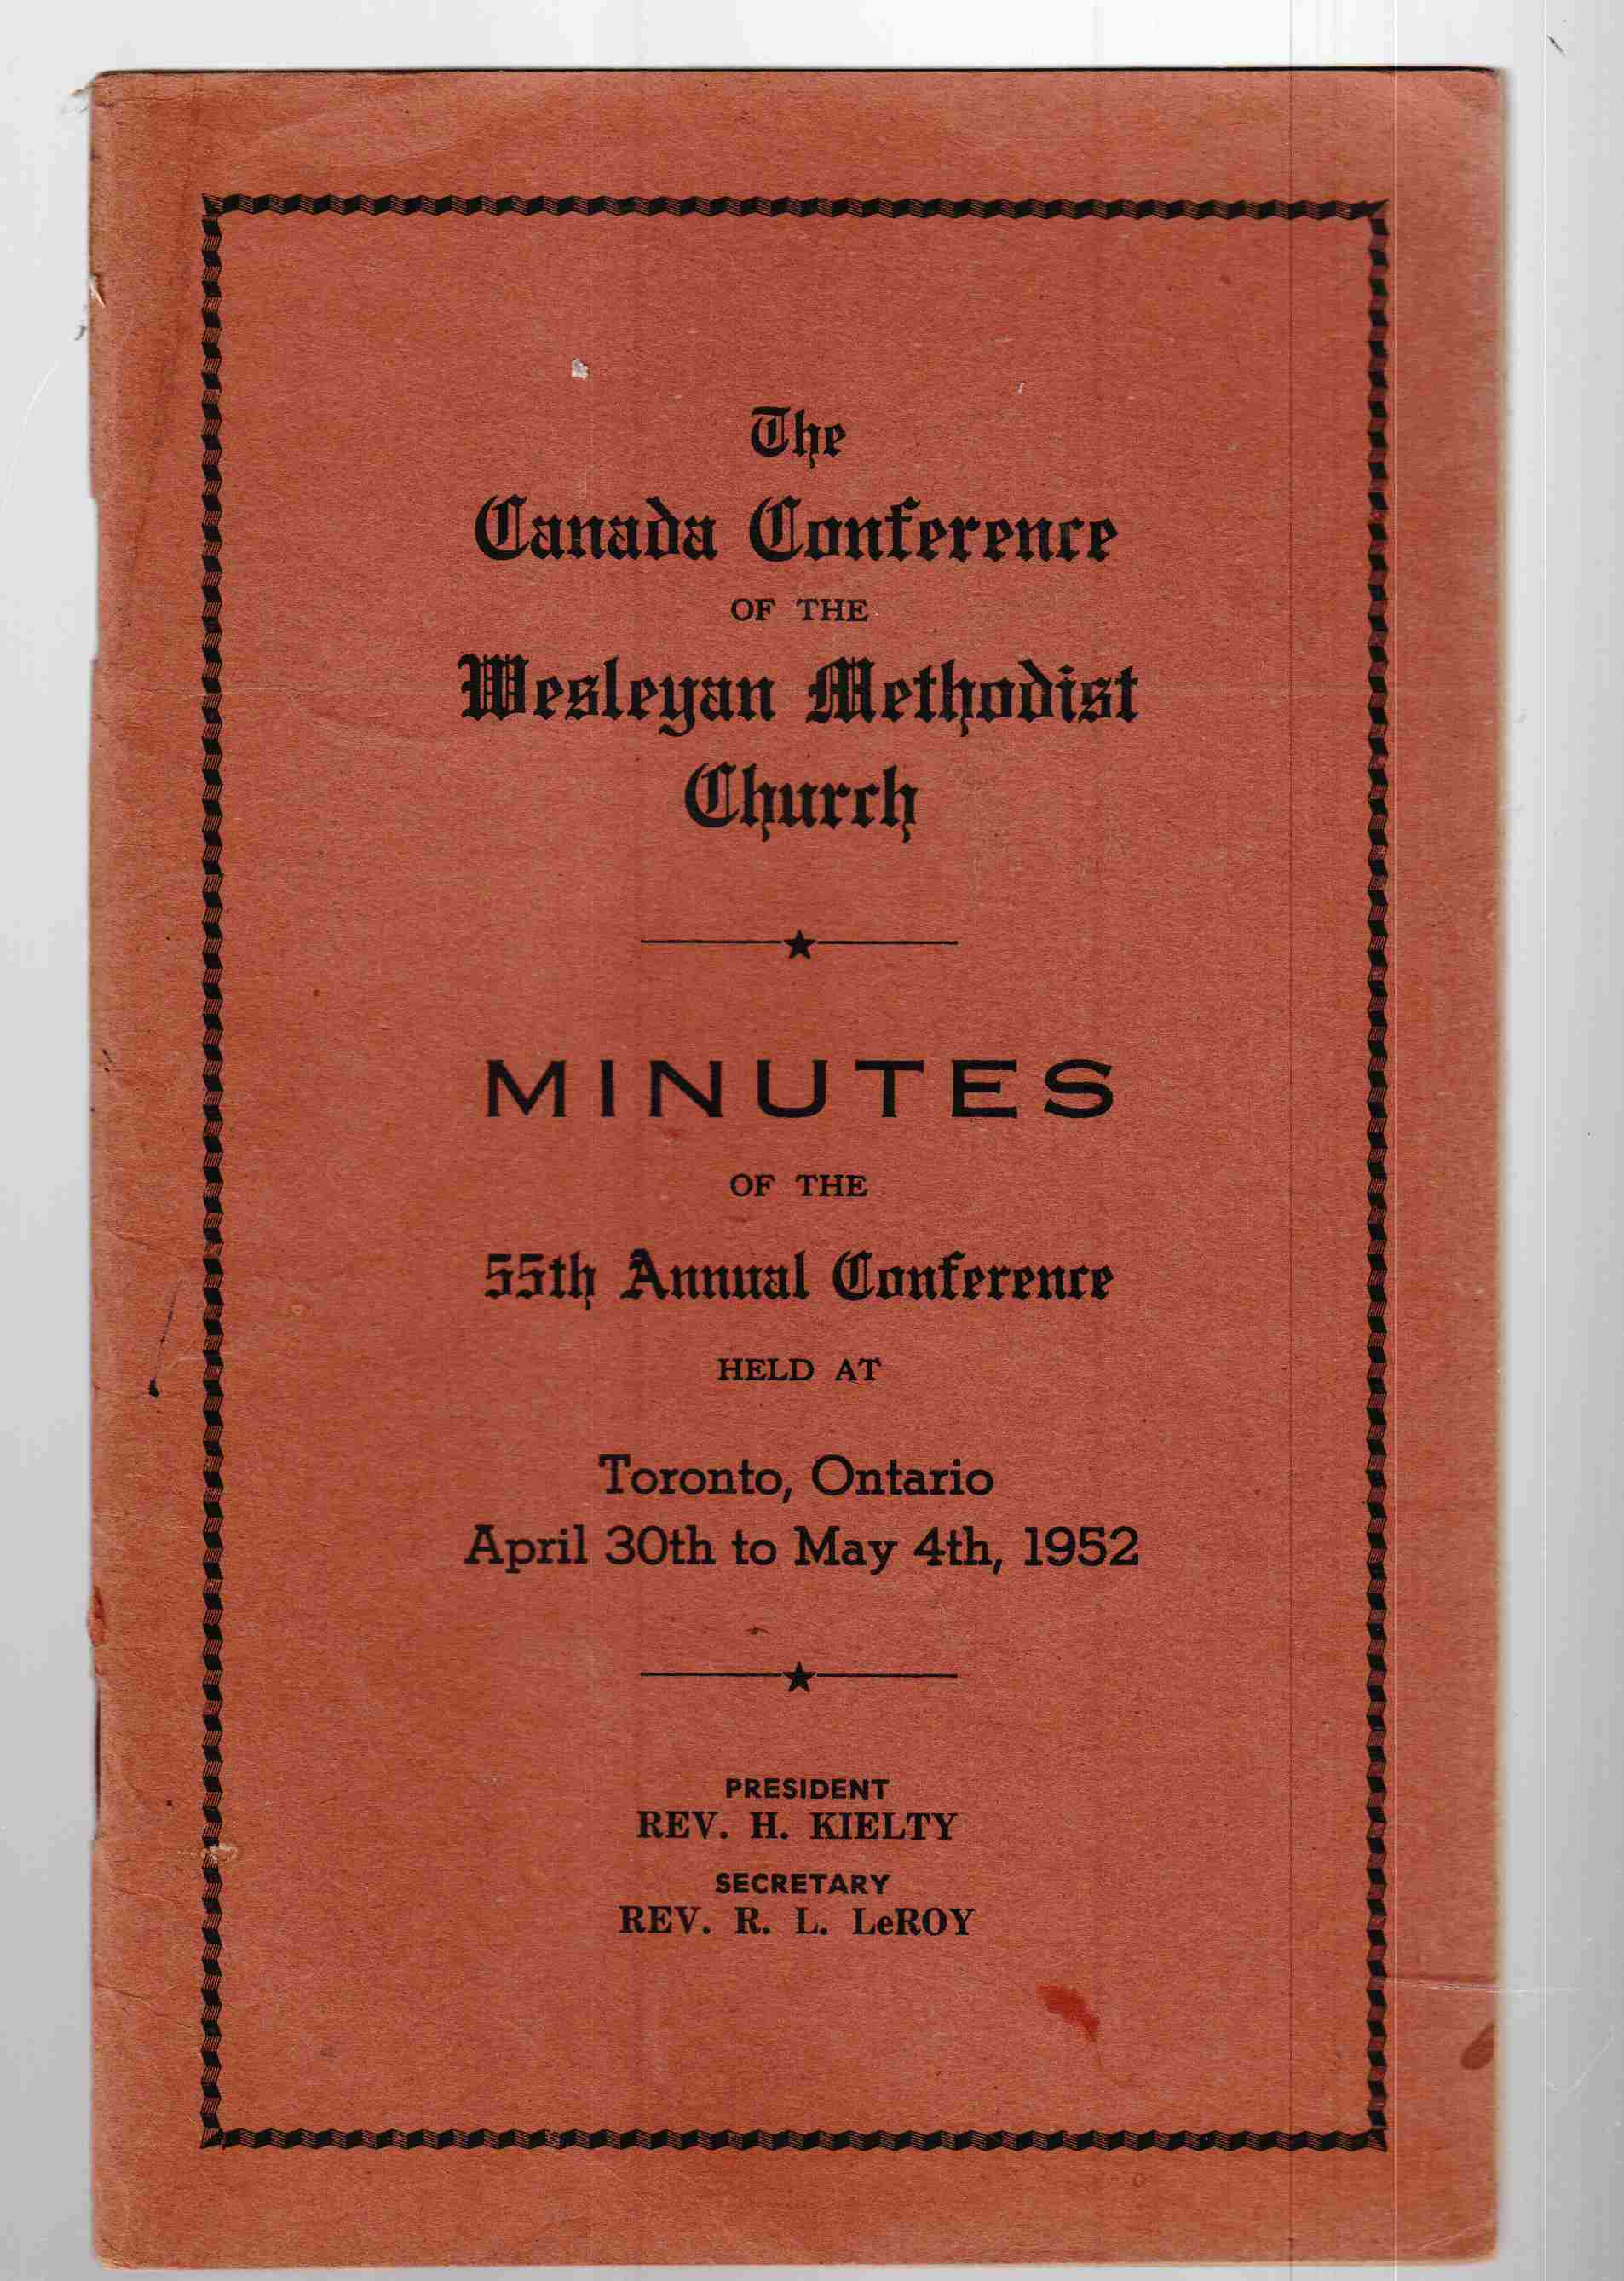 Image for The Canada Conference of the Wesleyan Methodist Church Minutes of the 55th Annual Conference Held At Toronto, Ontario April 30th to May 4th, 1952